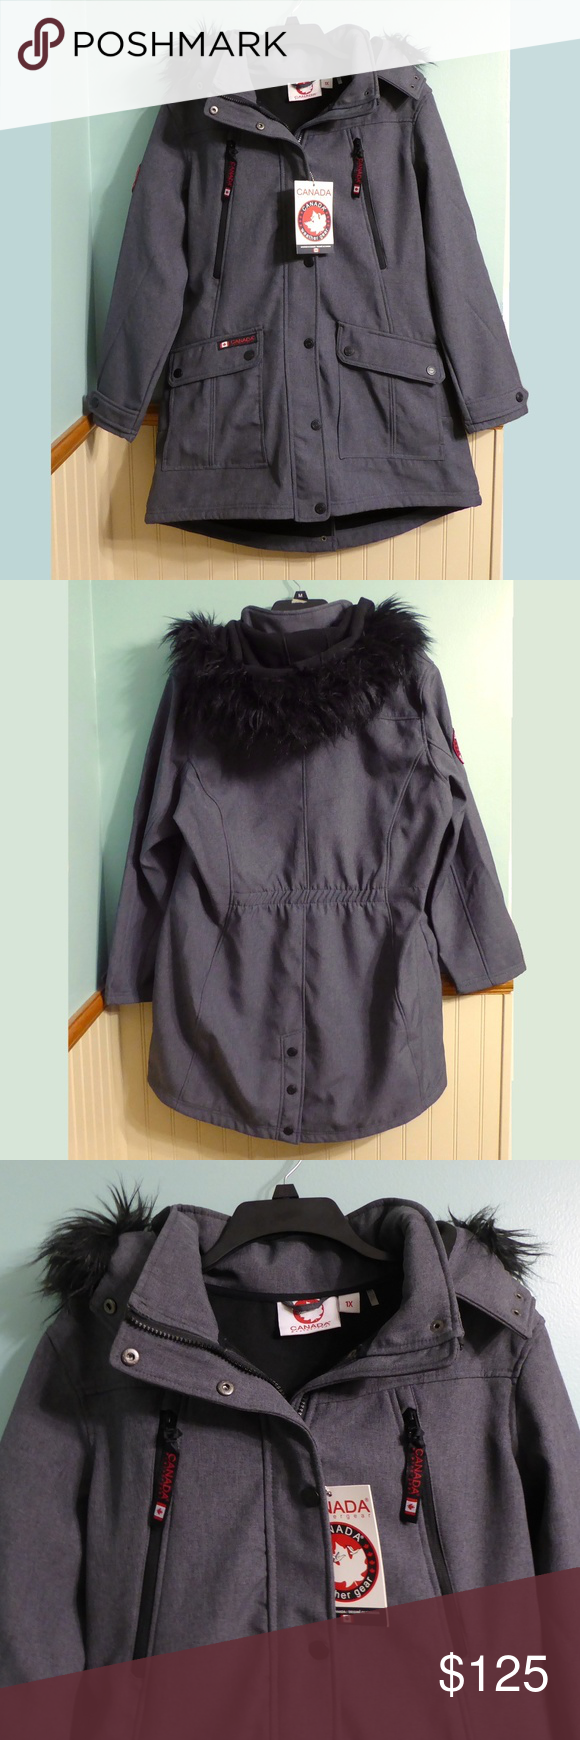 Nwt Canada Weather Gear Jacket 1x Charcoal Jacket Clothes Design Jackets For Women [ 1740 x 580 Pixel ]